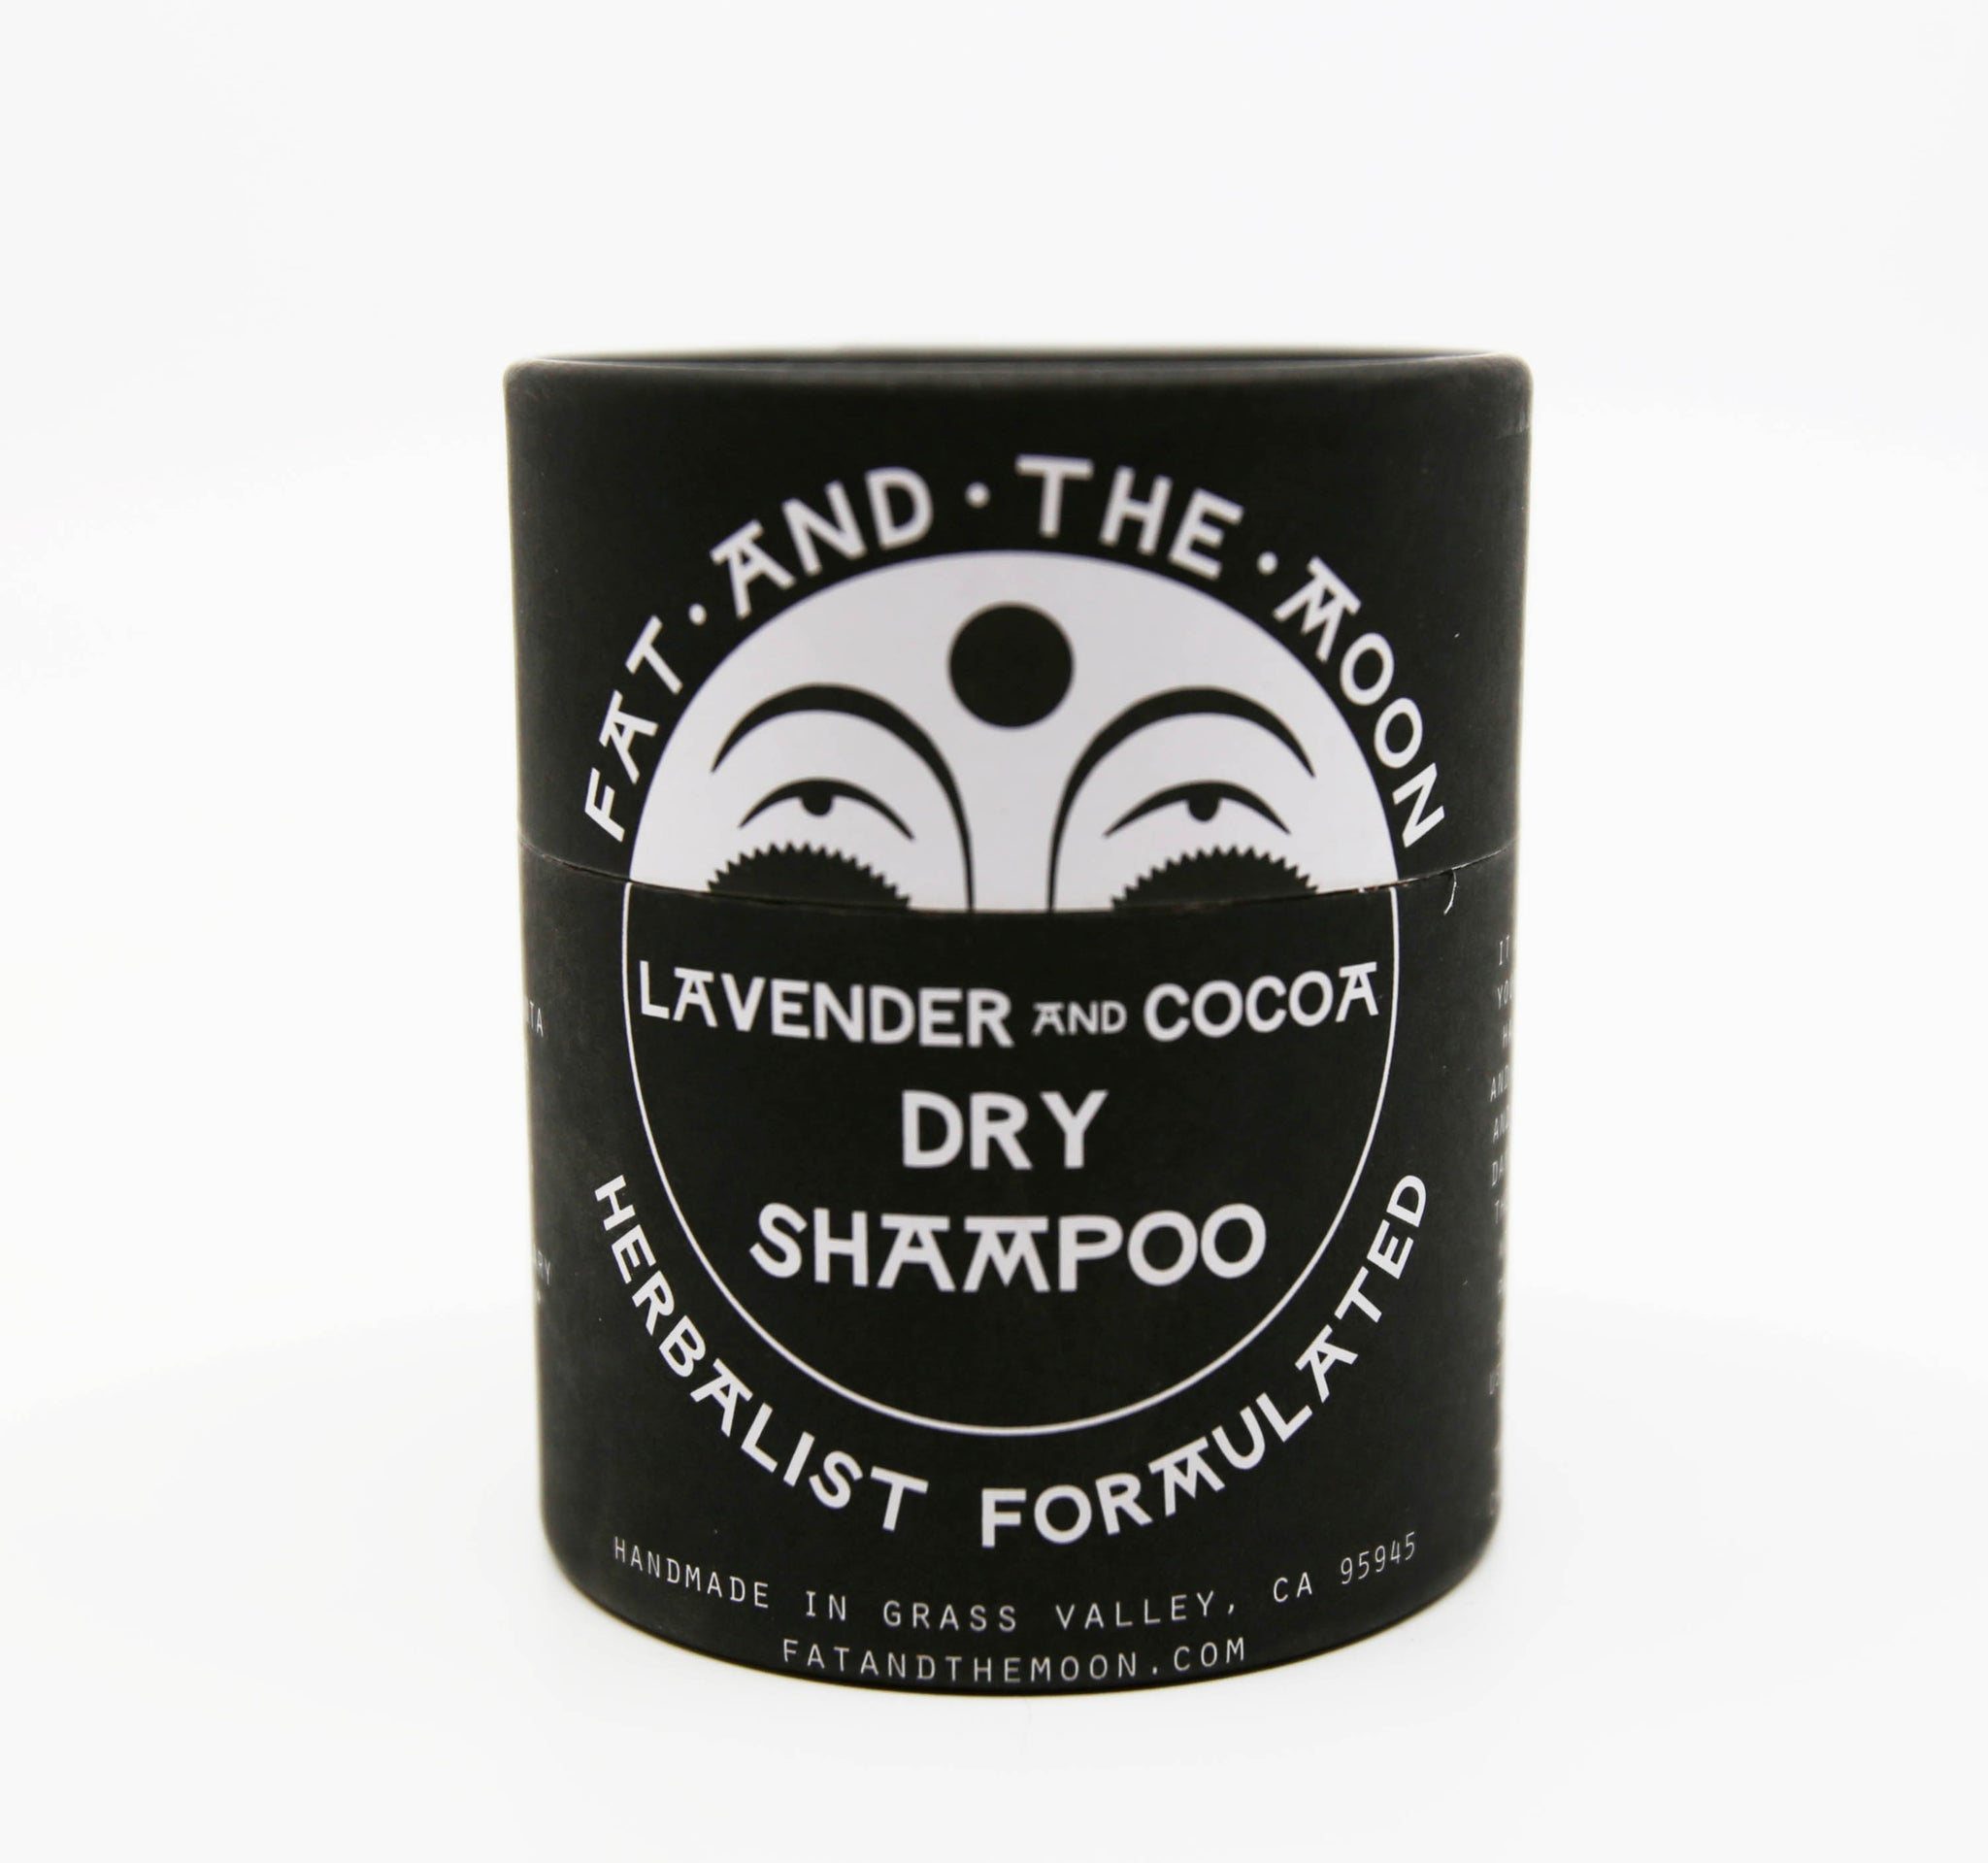 Lavender and Cocoa Dry Shampoo